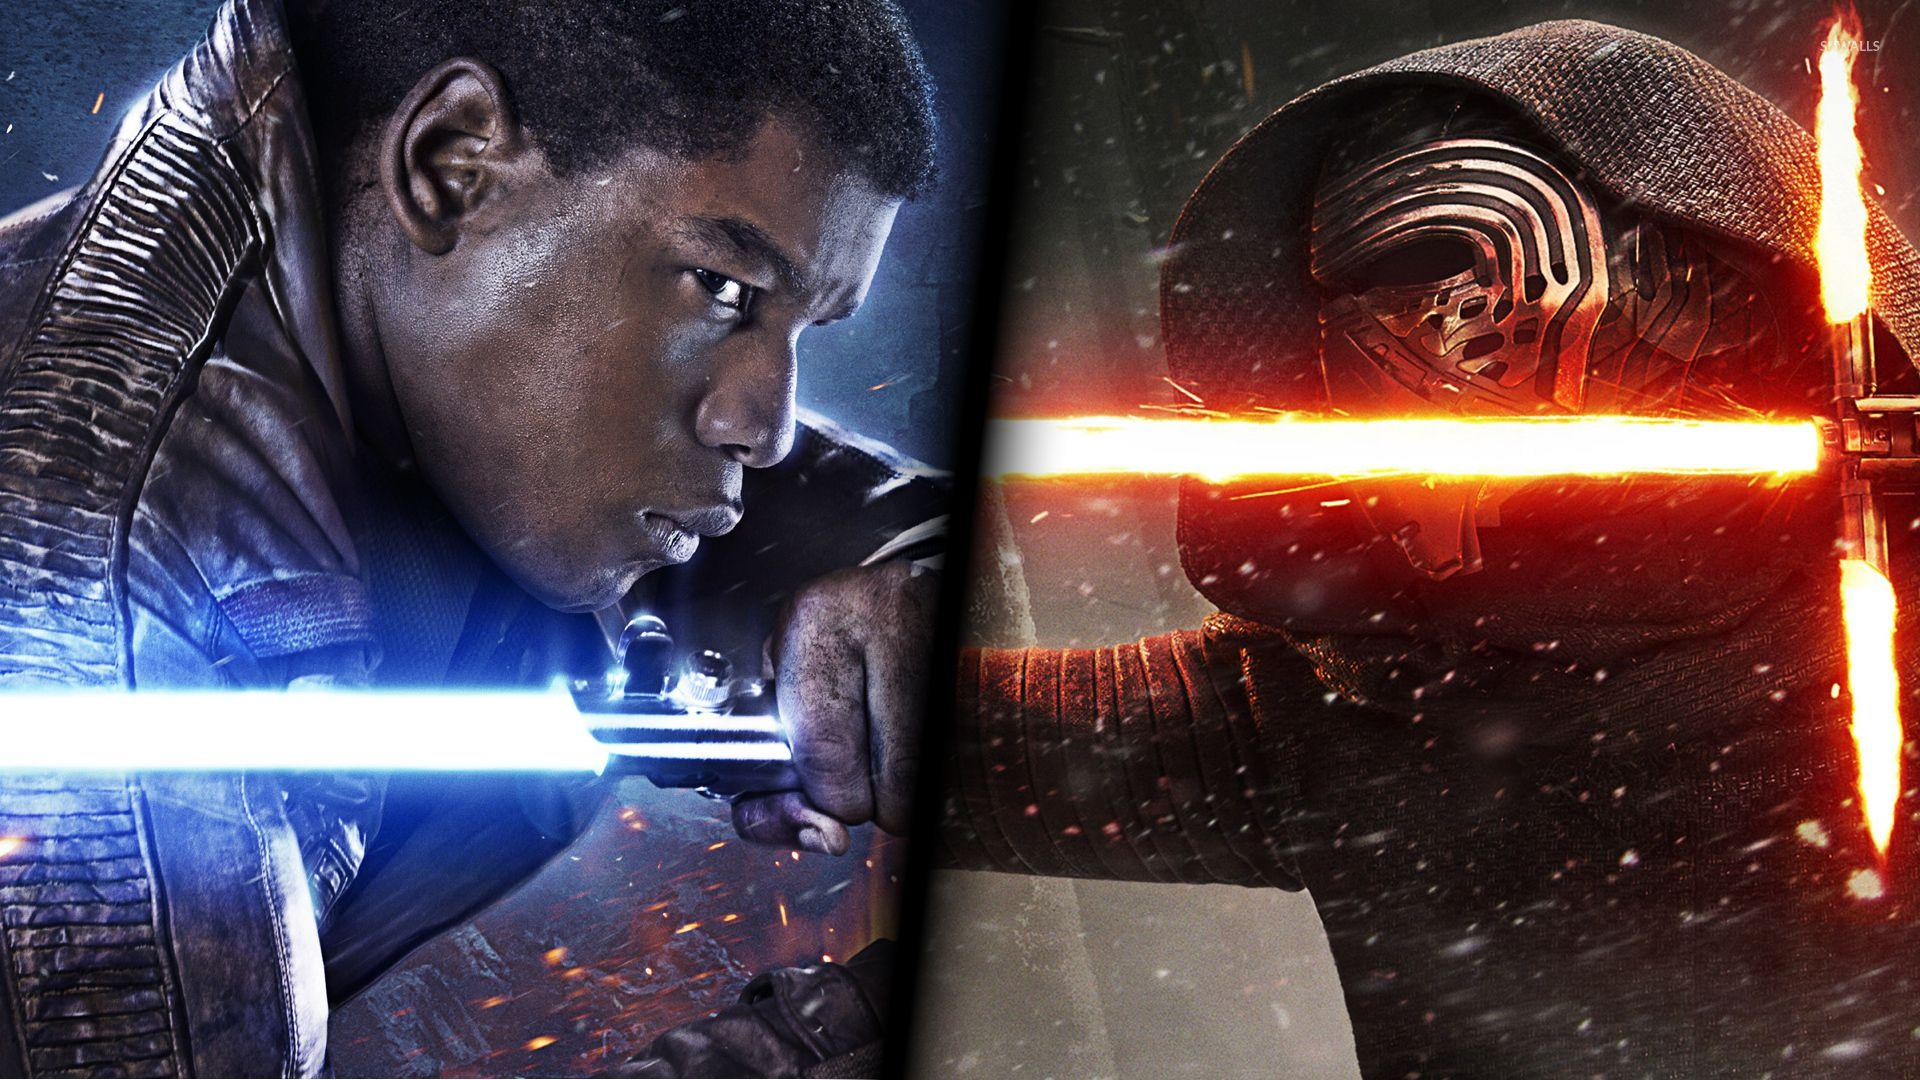 Finn vs Kylo Ren in Star Wars: The Force Awakens wallpapers